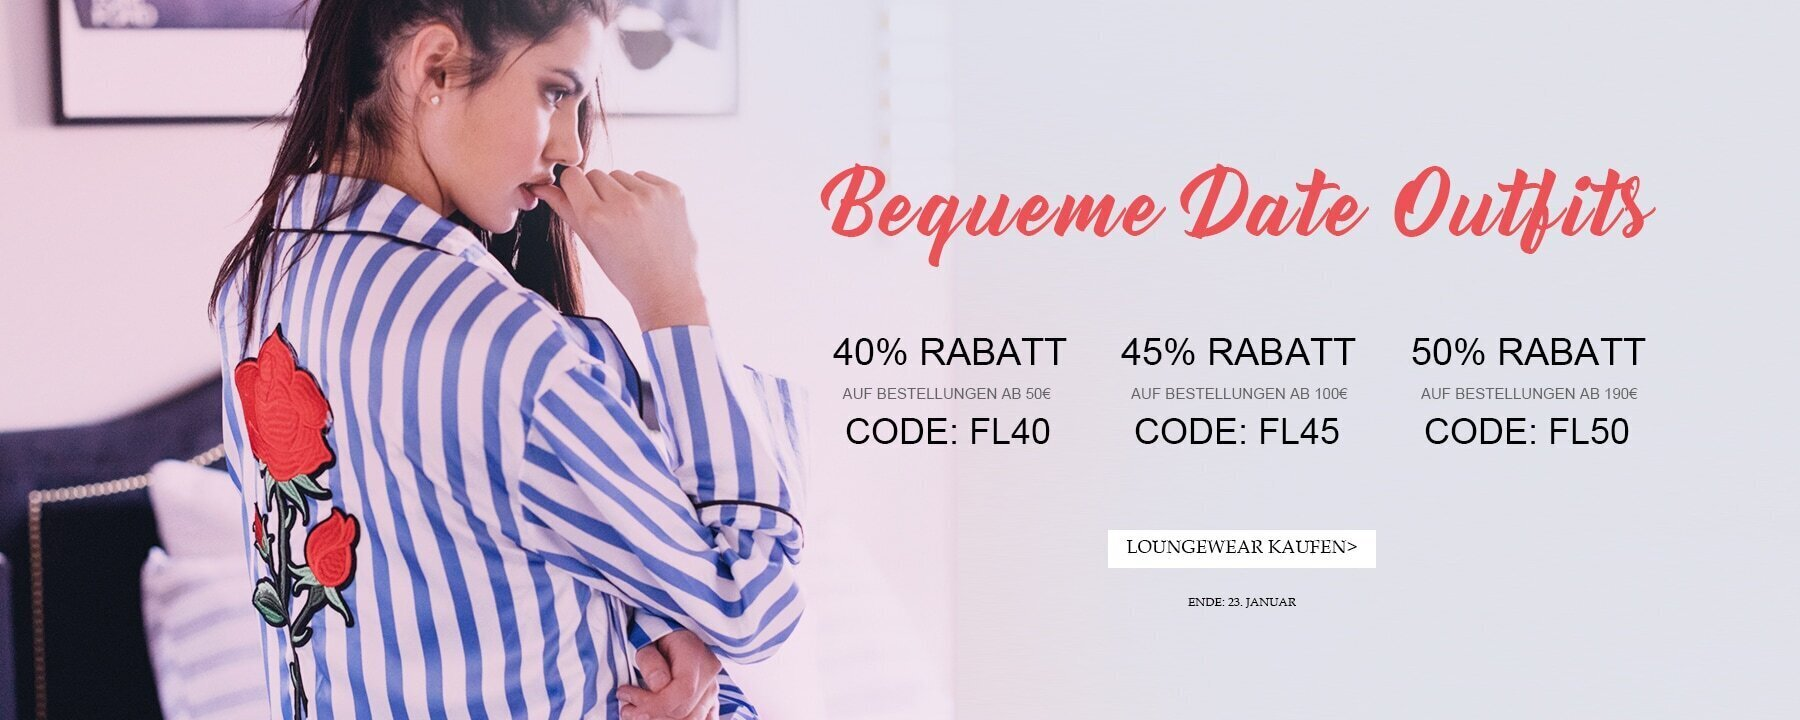 Bequeme Date Outfits